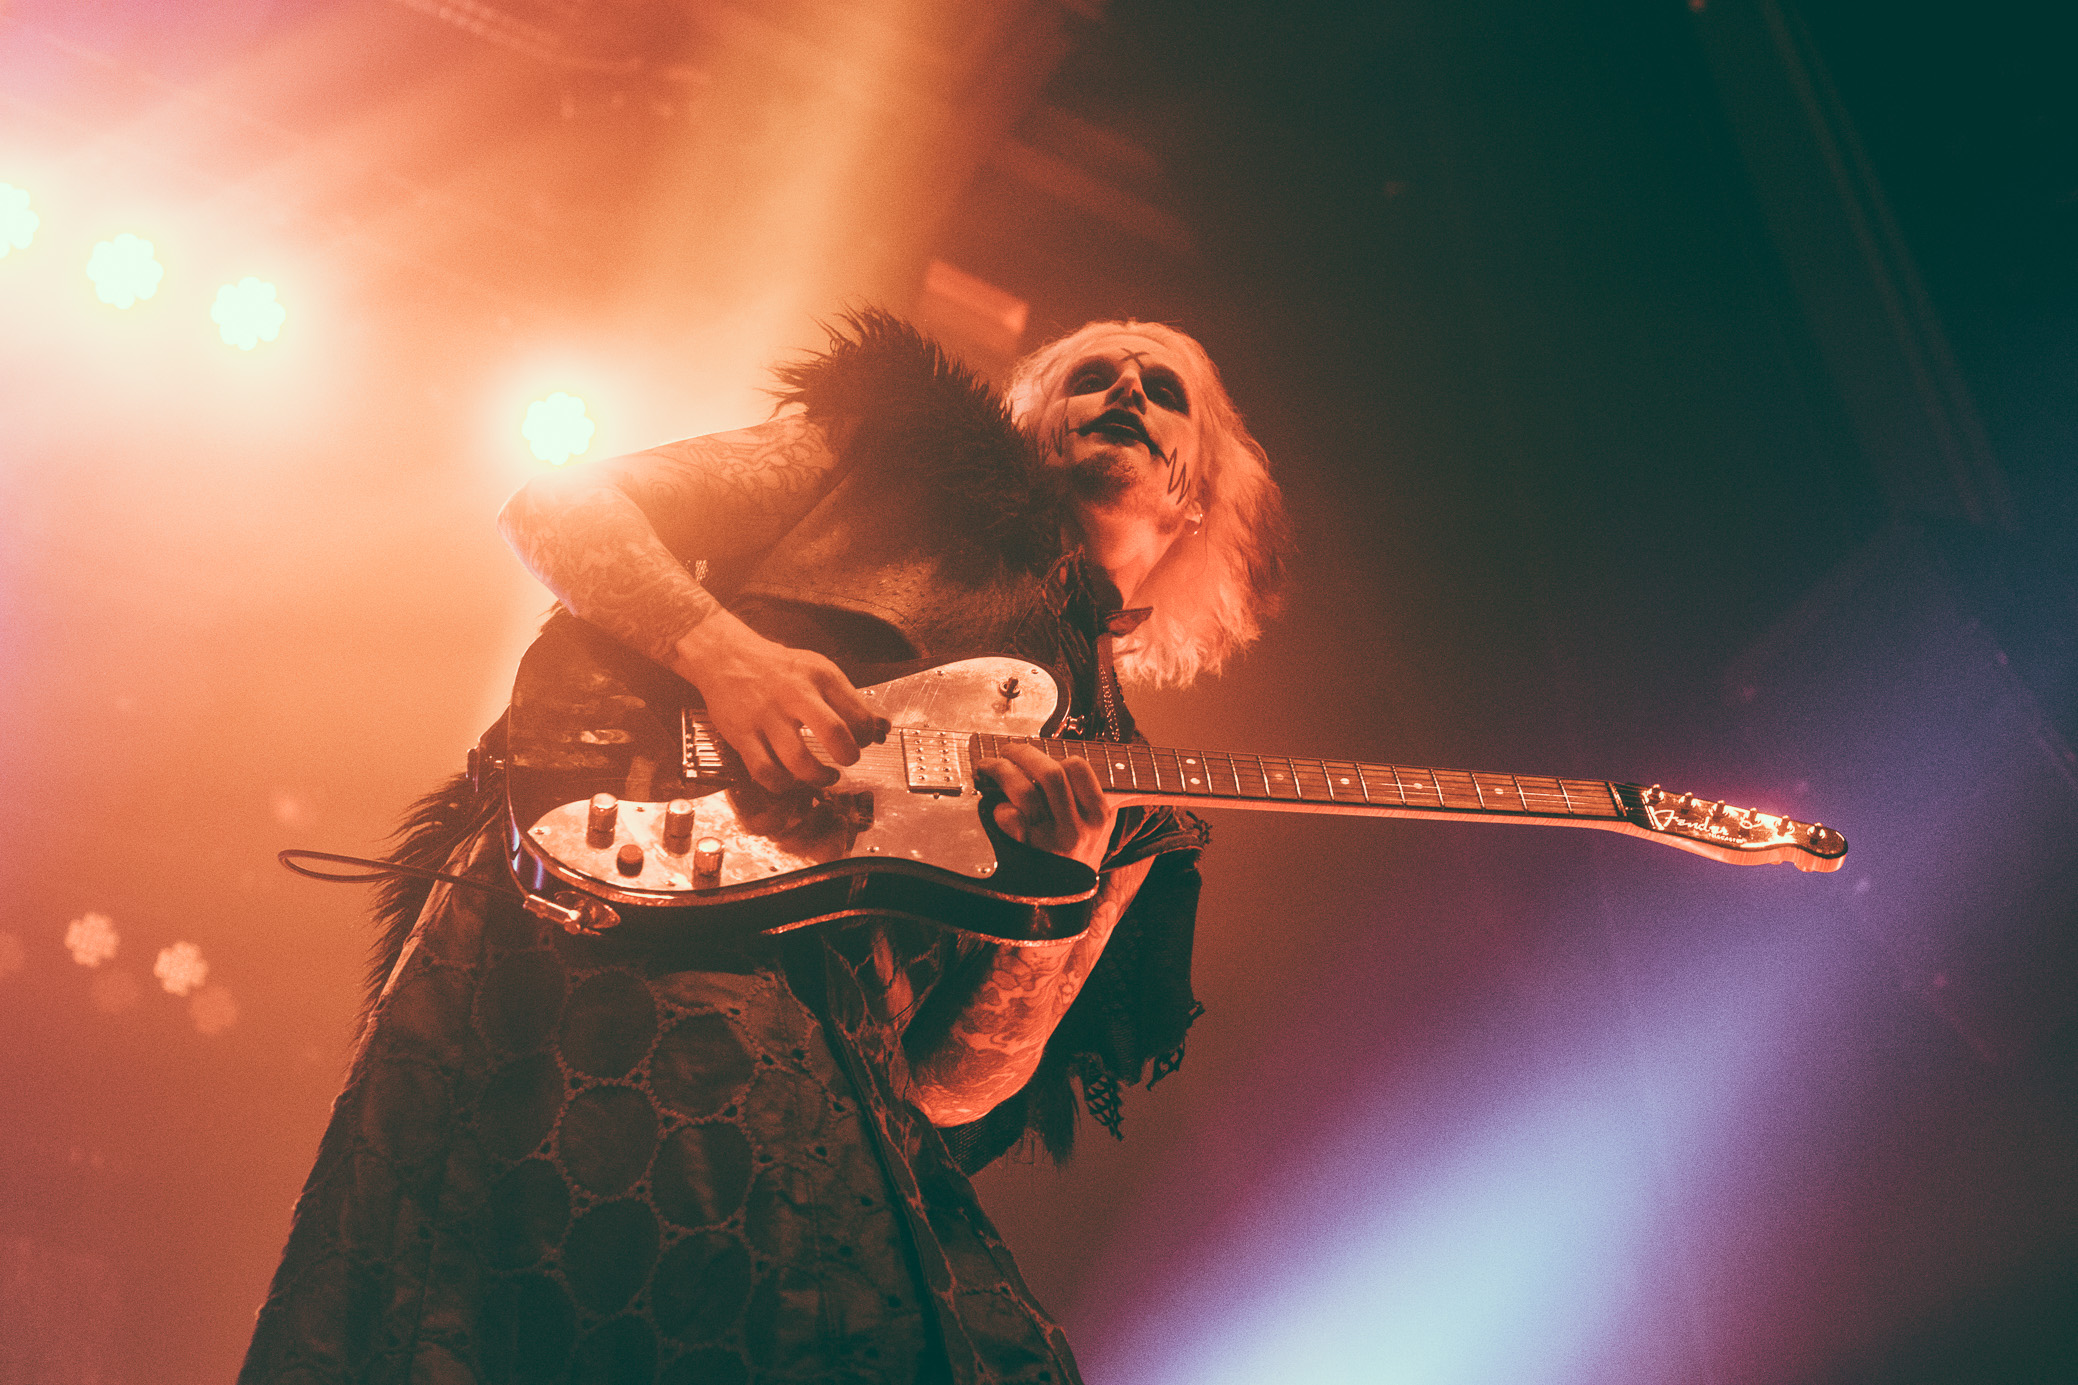 John 5 performs with Rob Zombie at the Coca-Cola Roxy Theatre in Atlanta, Georgia on October 3rd, 2017. (Photo by David A. Smith/DSmithScenes)